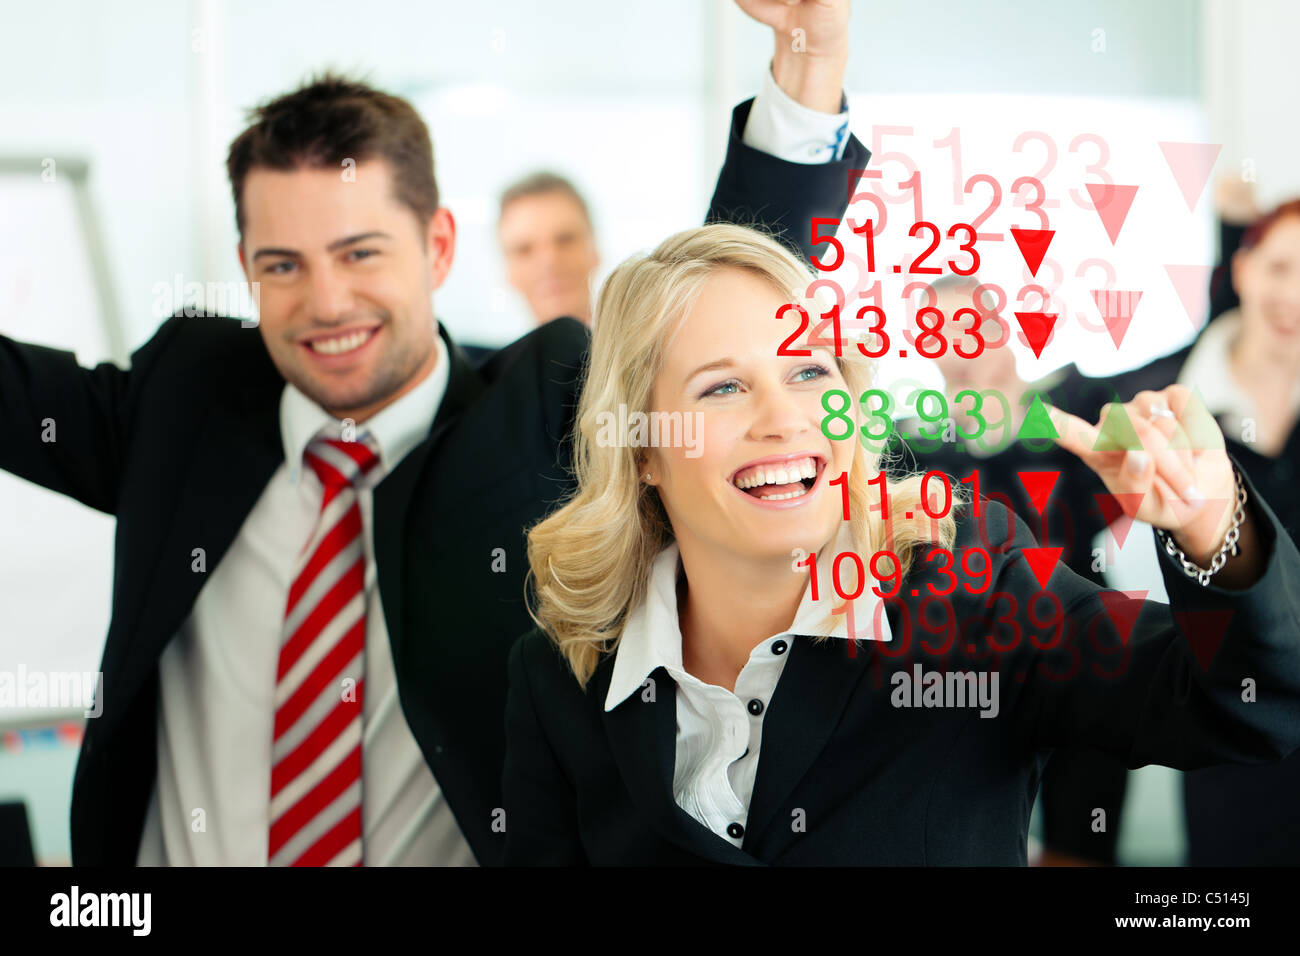 Business - presentation within a team; a female banker or consultant shows figures or share prices on screen - Stock Image